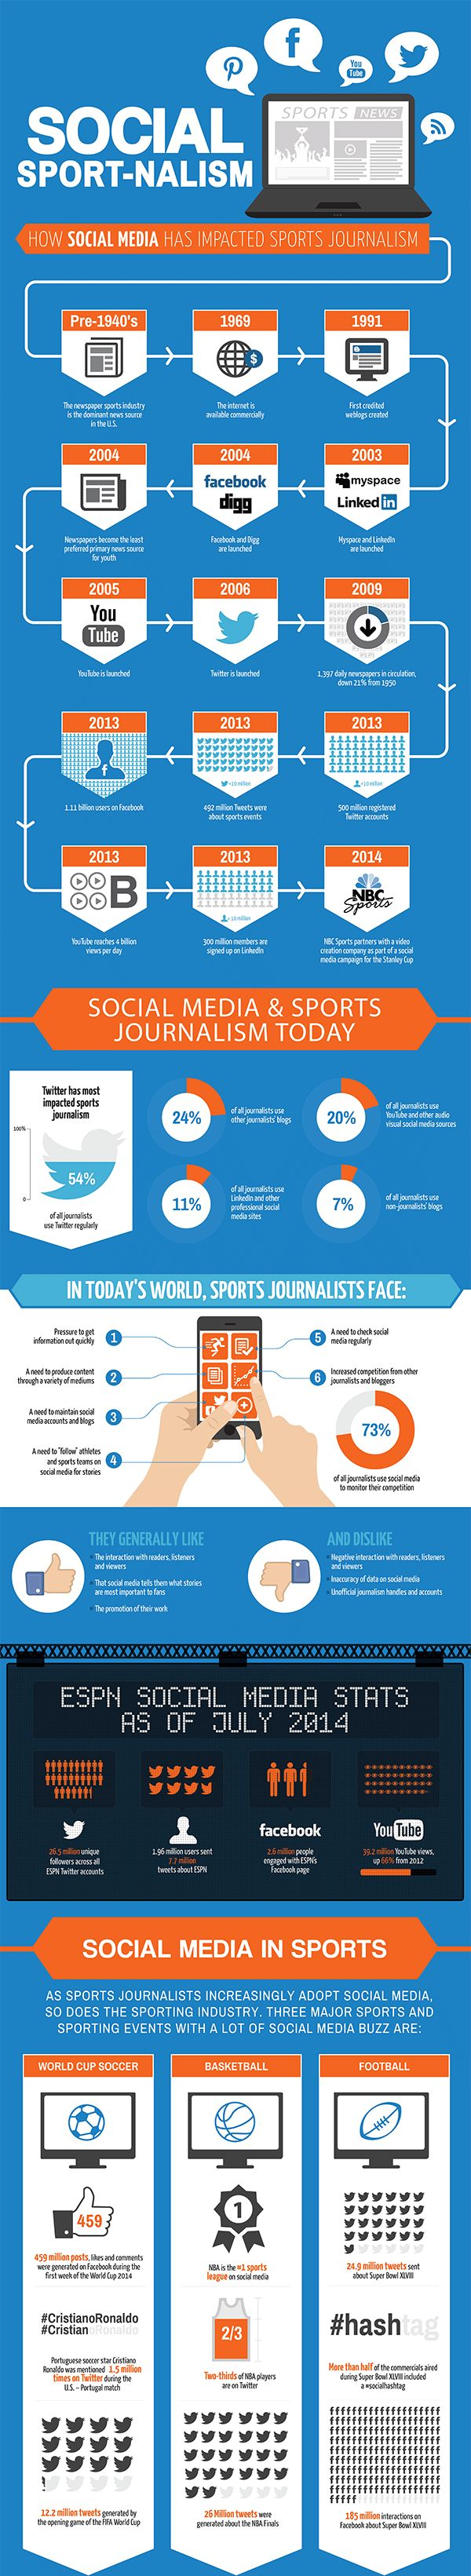 <p>Social media has had a profound effect on the evolution of sports journalism.</p>